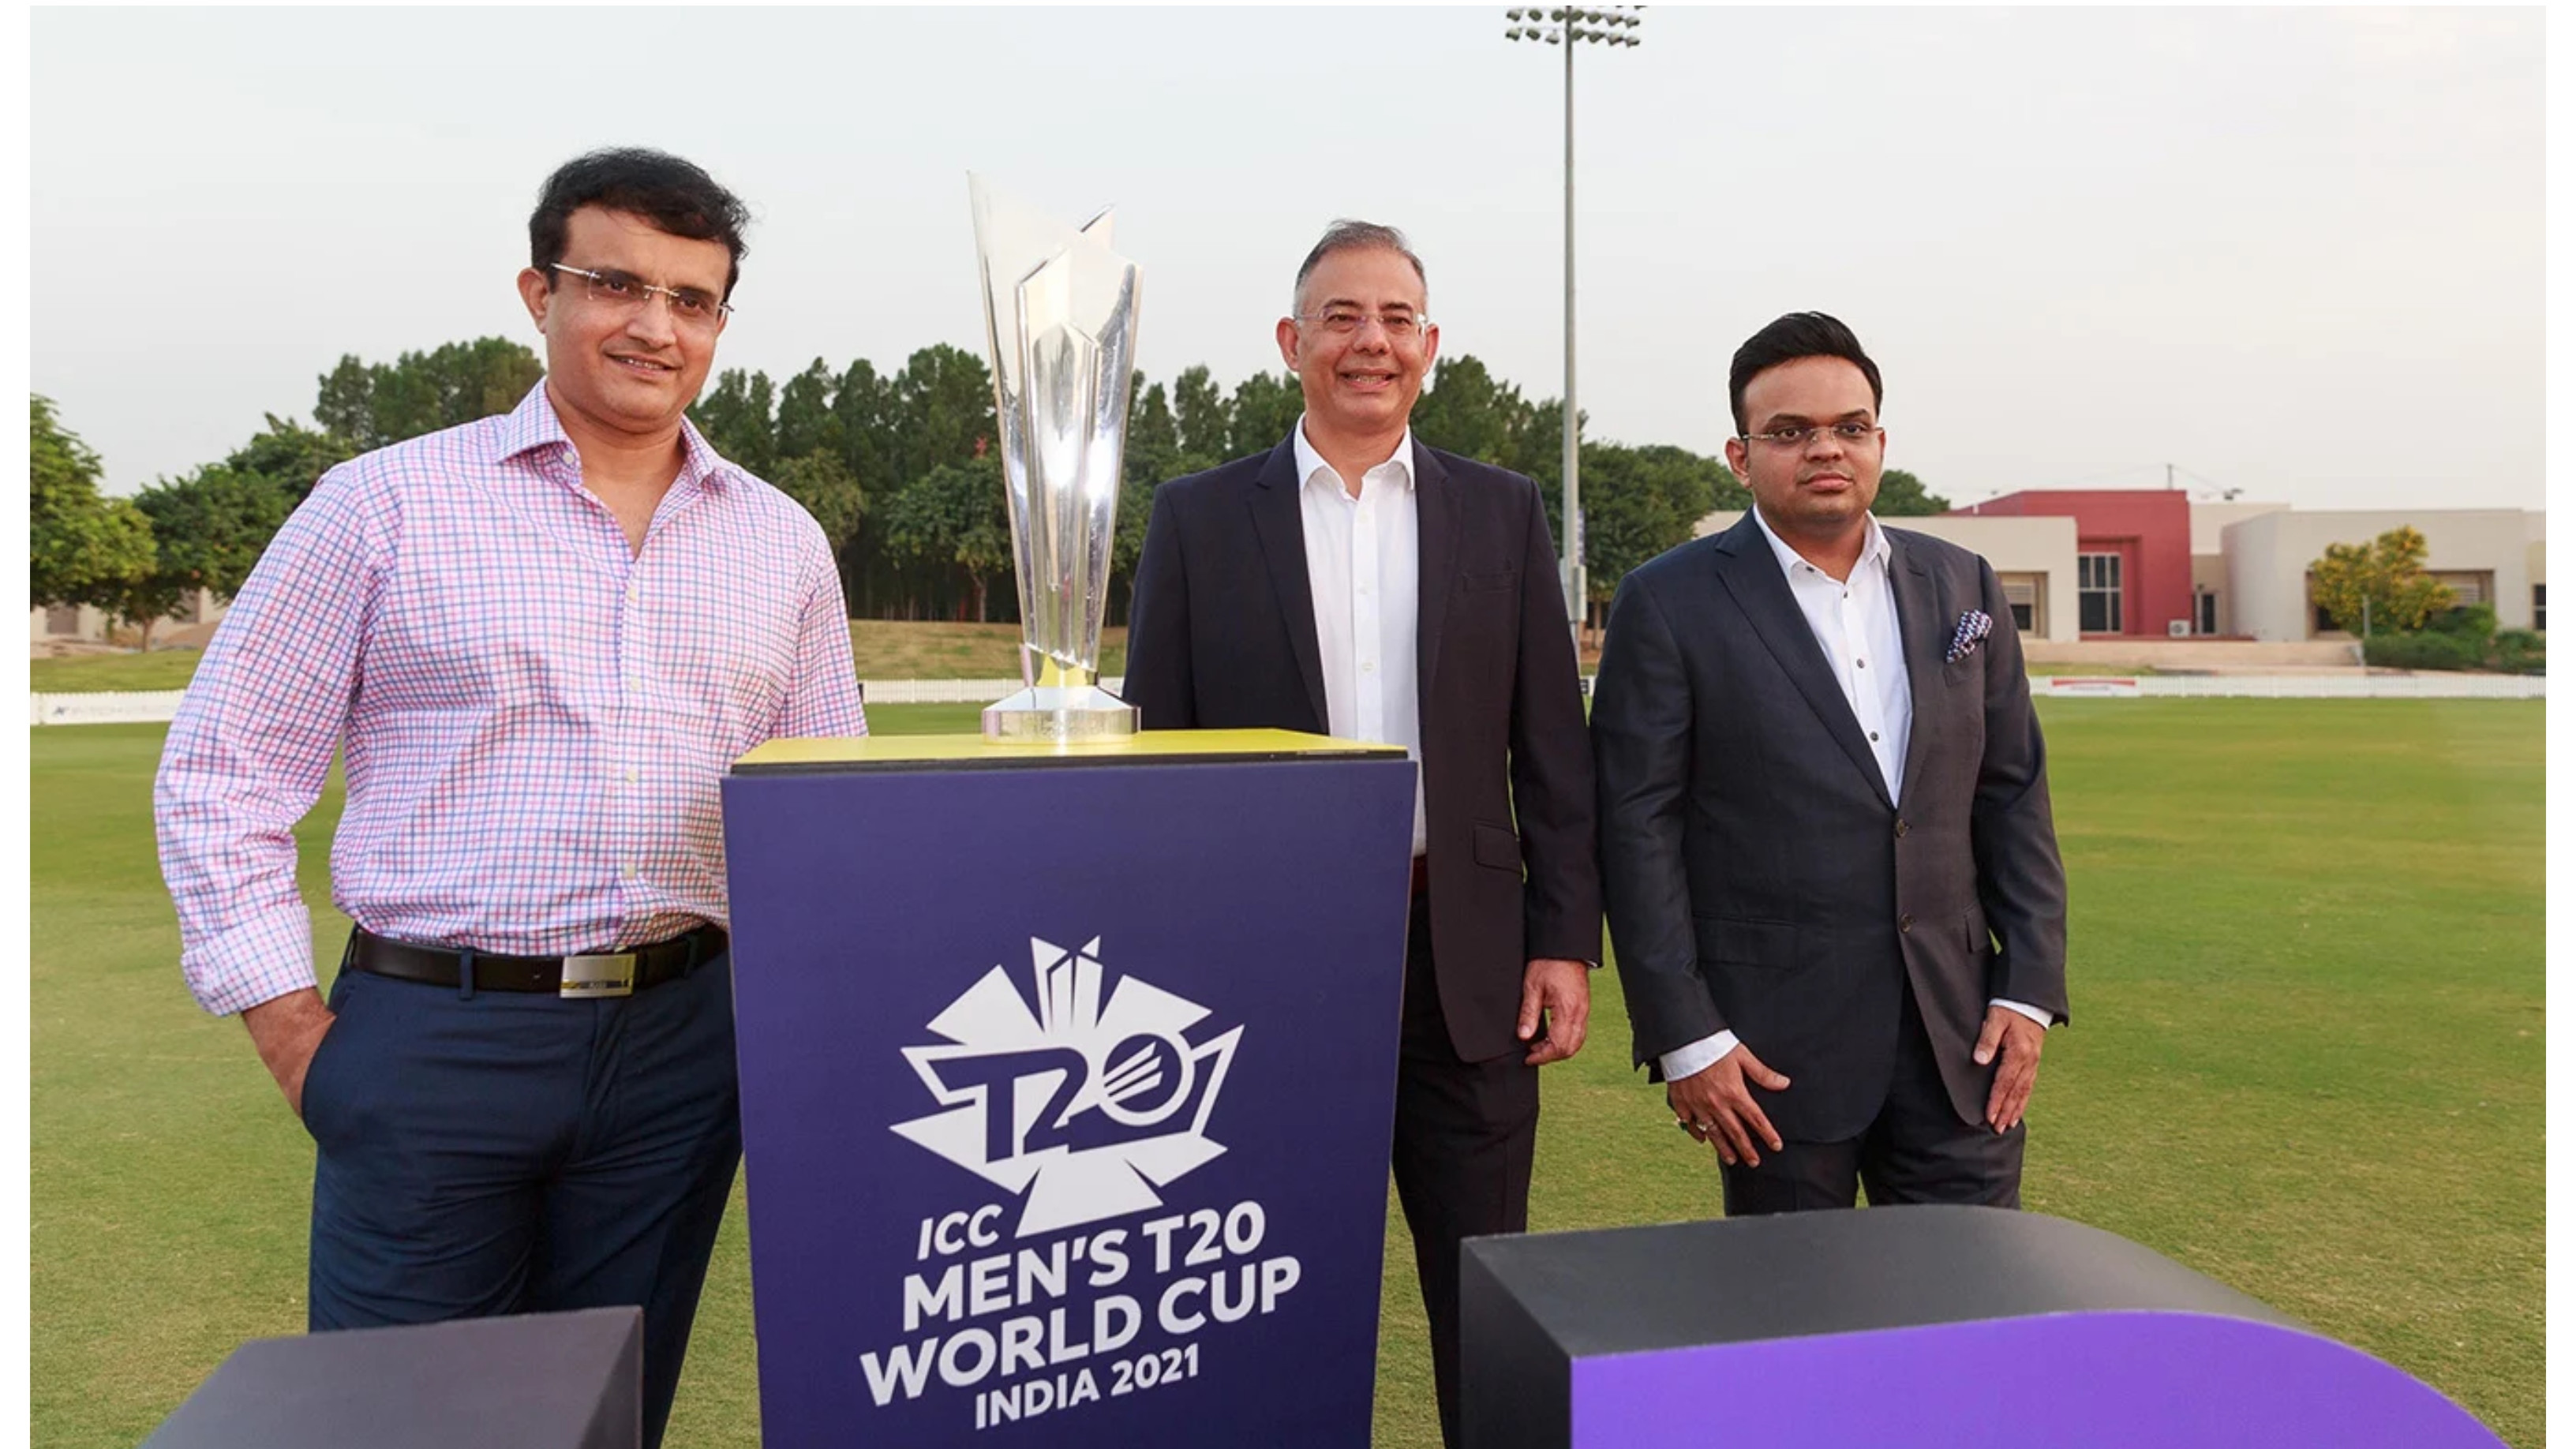 BCCI internally intimates ICC to shift T20 World Cup 2021 out of India: Report